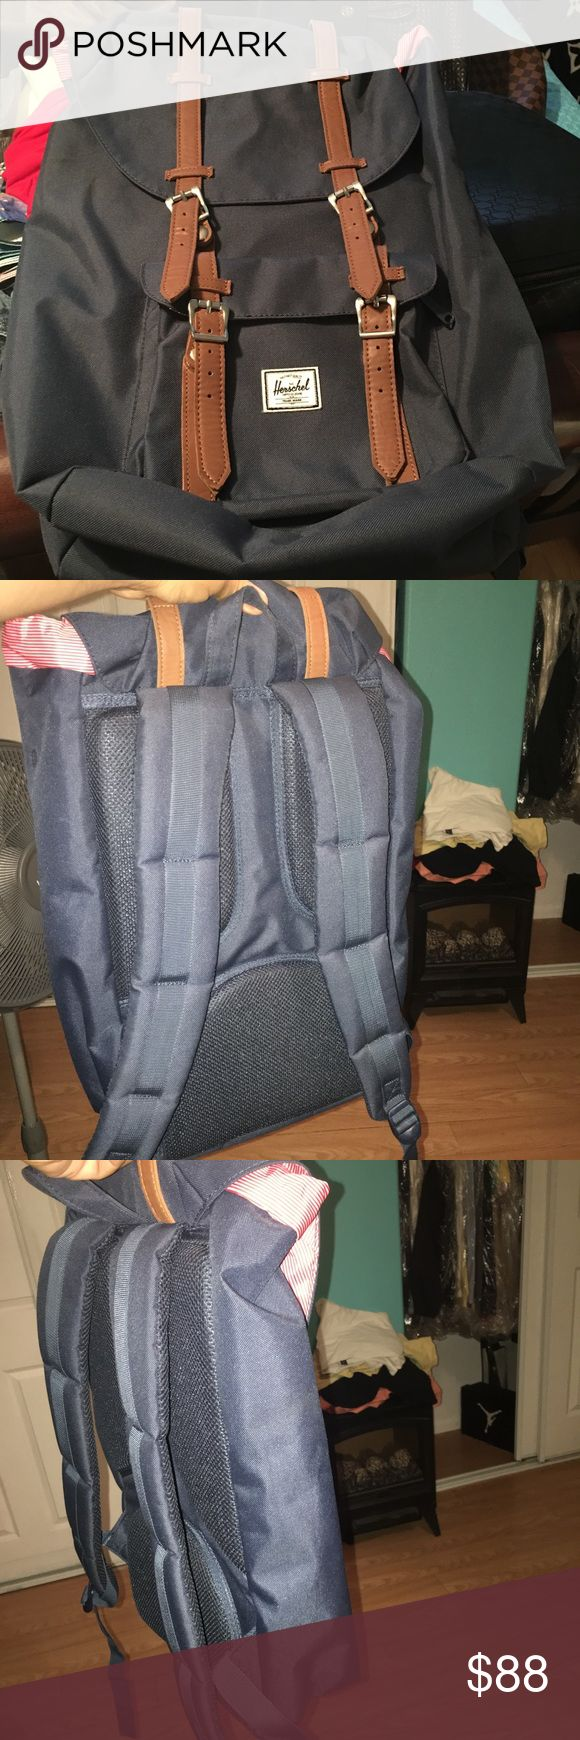 100% Authentic Hershel Backpack (unisex) UNISEX...  100% Authentic glamorous luxury stunning highend Backpack in new condition has no rips or cracks or torns no scratches only used 3 times..price is firm Herschel Bags Backpacks